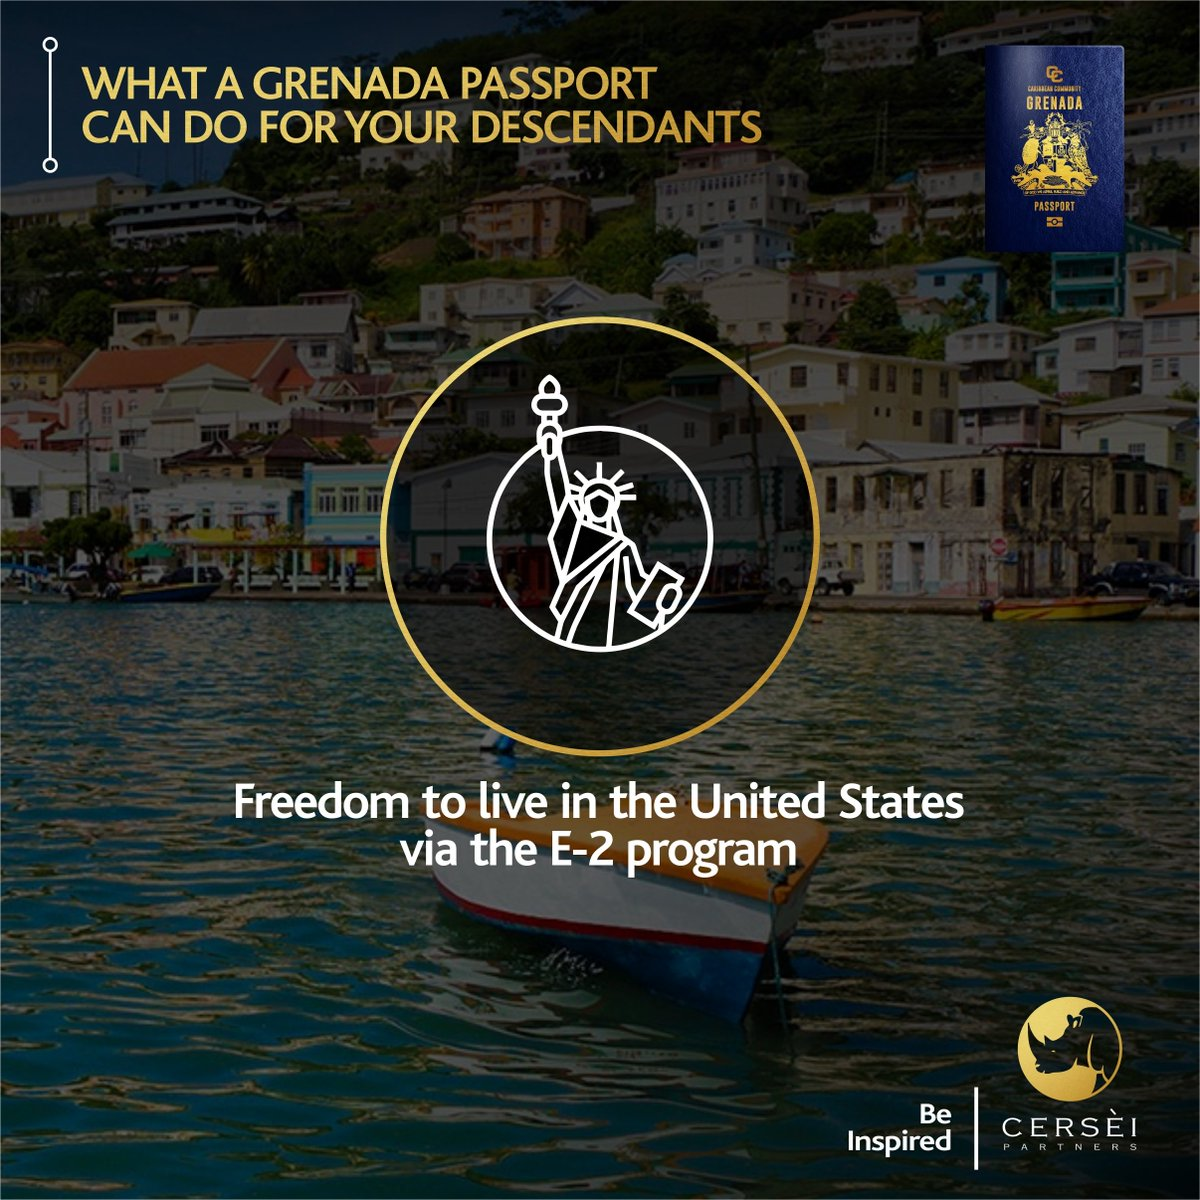 Contact us now to get started >> https://t.co/PUYz8LRSx2  Cersèi Partners - Be Inspired #CersèiPartners #immigration #WhatNext #news #travelfree #investment #globalinvestment #luxurylife #lagosnigeria #wealthbuilding #wealthcreation #fredomlifestyle #CitizenshipByInvestment https://t.co/XiOjMrL44v